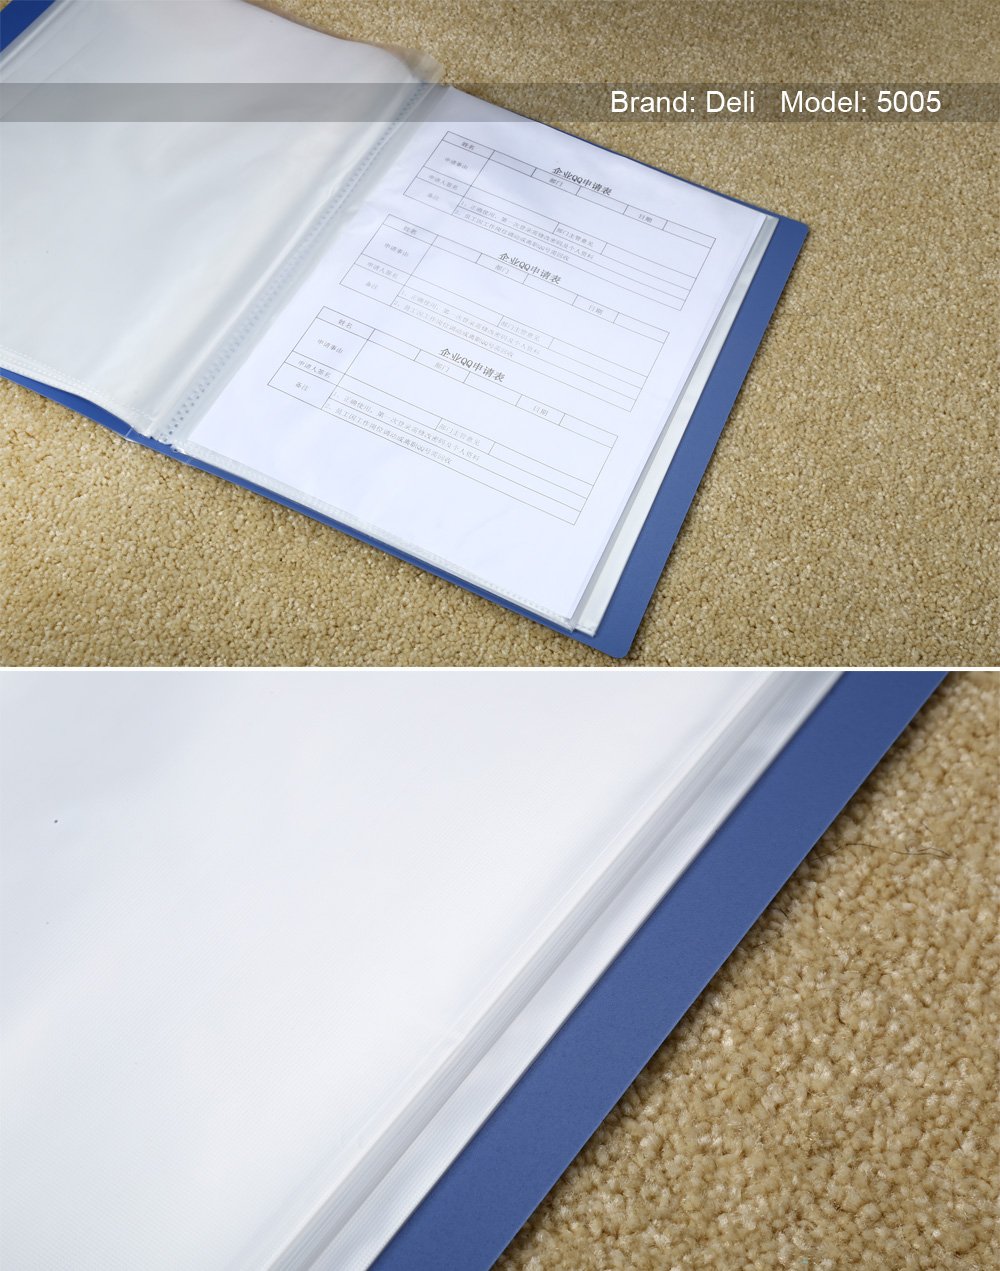 Deli 5005 Clear Book A4 Document Bag